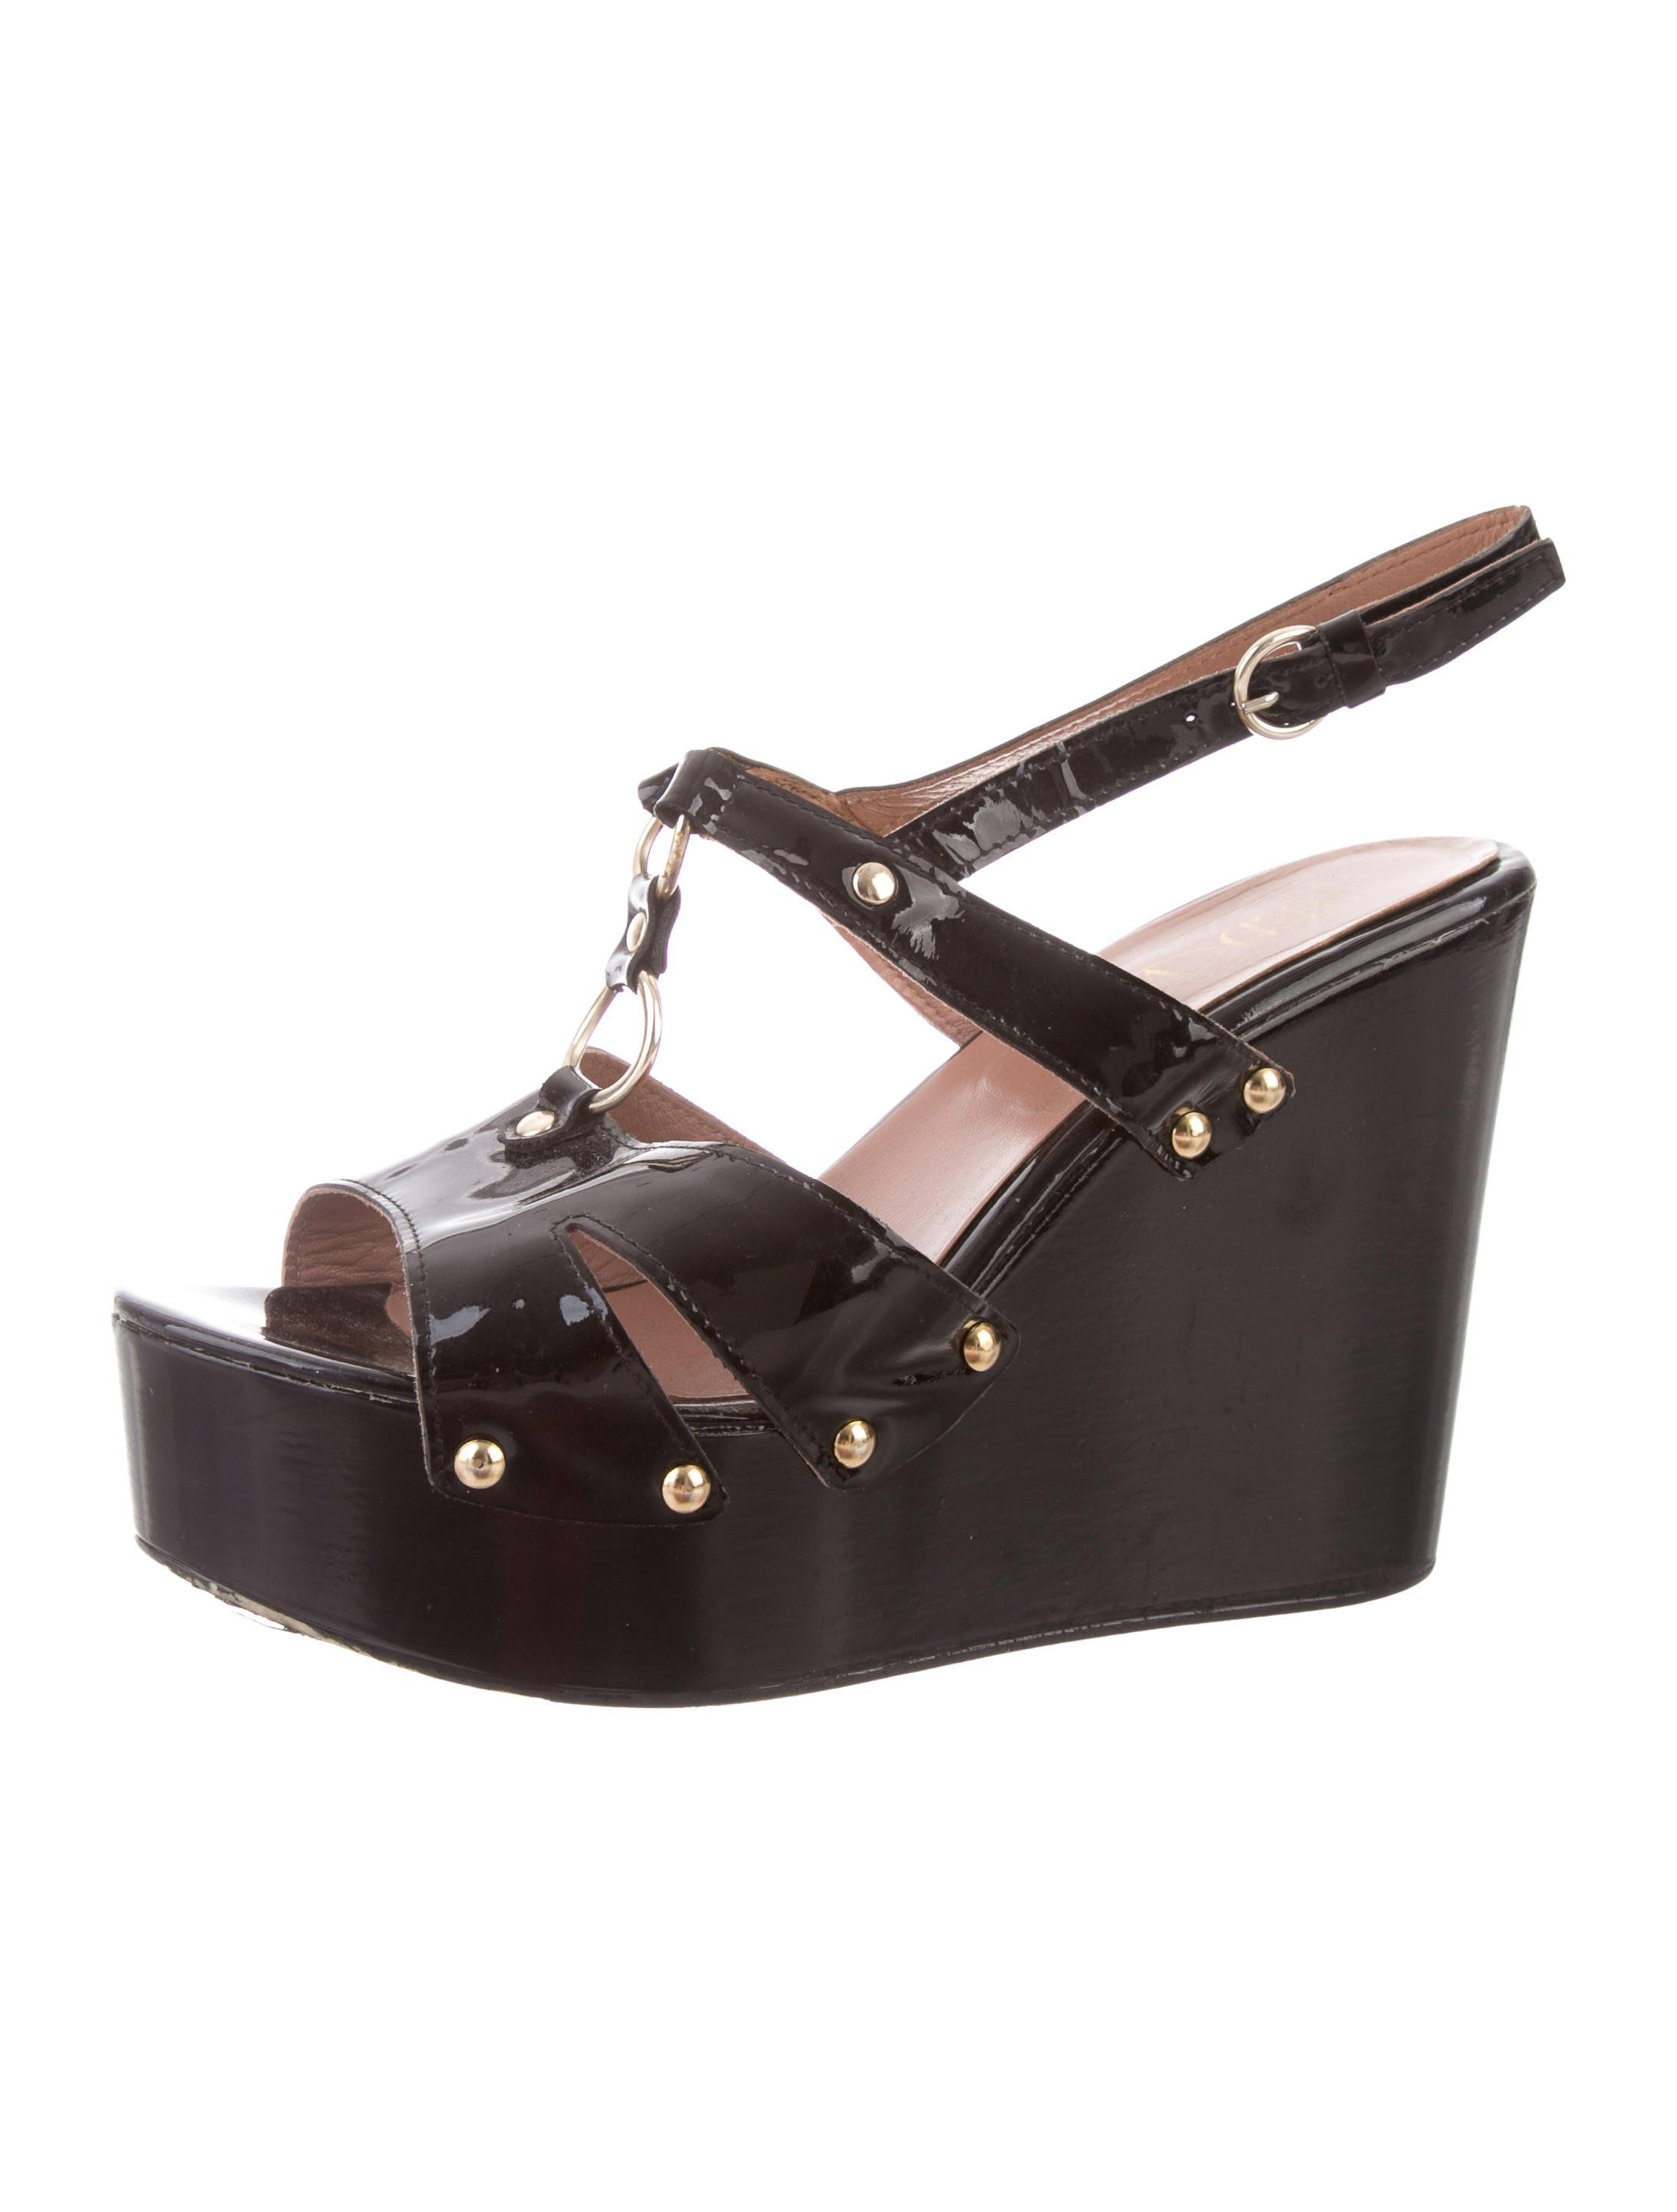 2349fa966 Black patent leather Red Valentino platform sandals with gold-tone  hardware